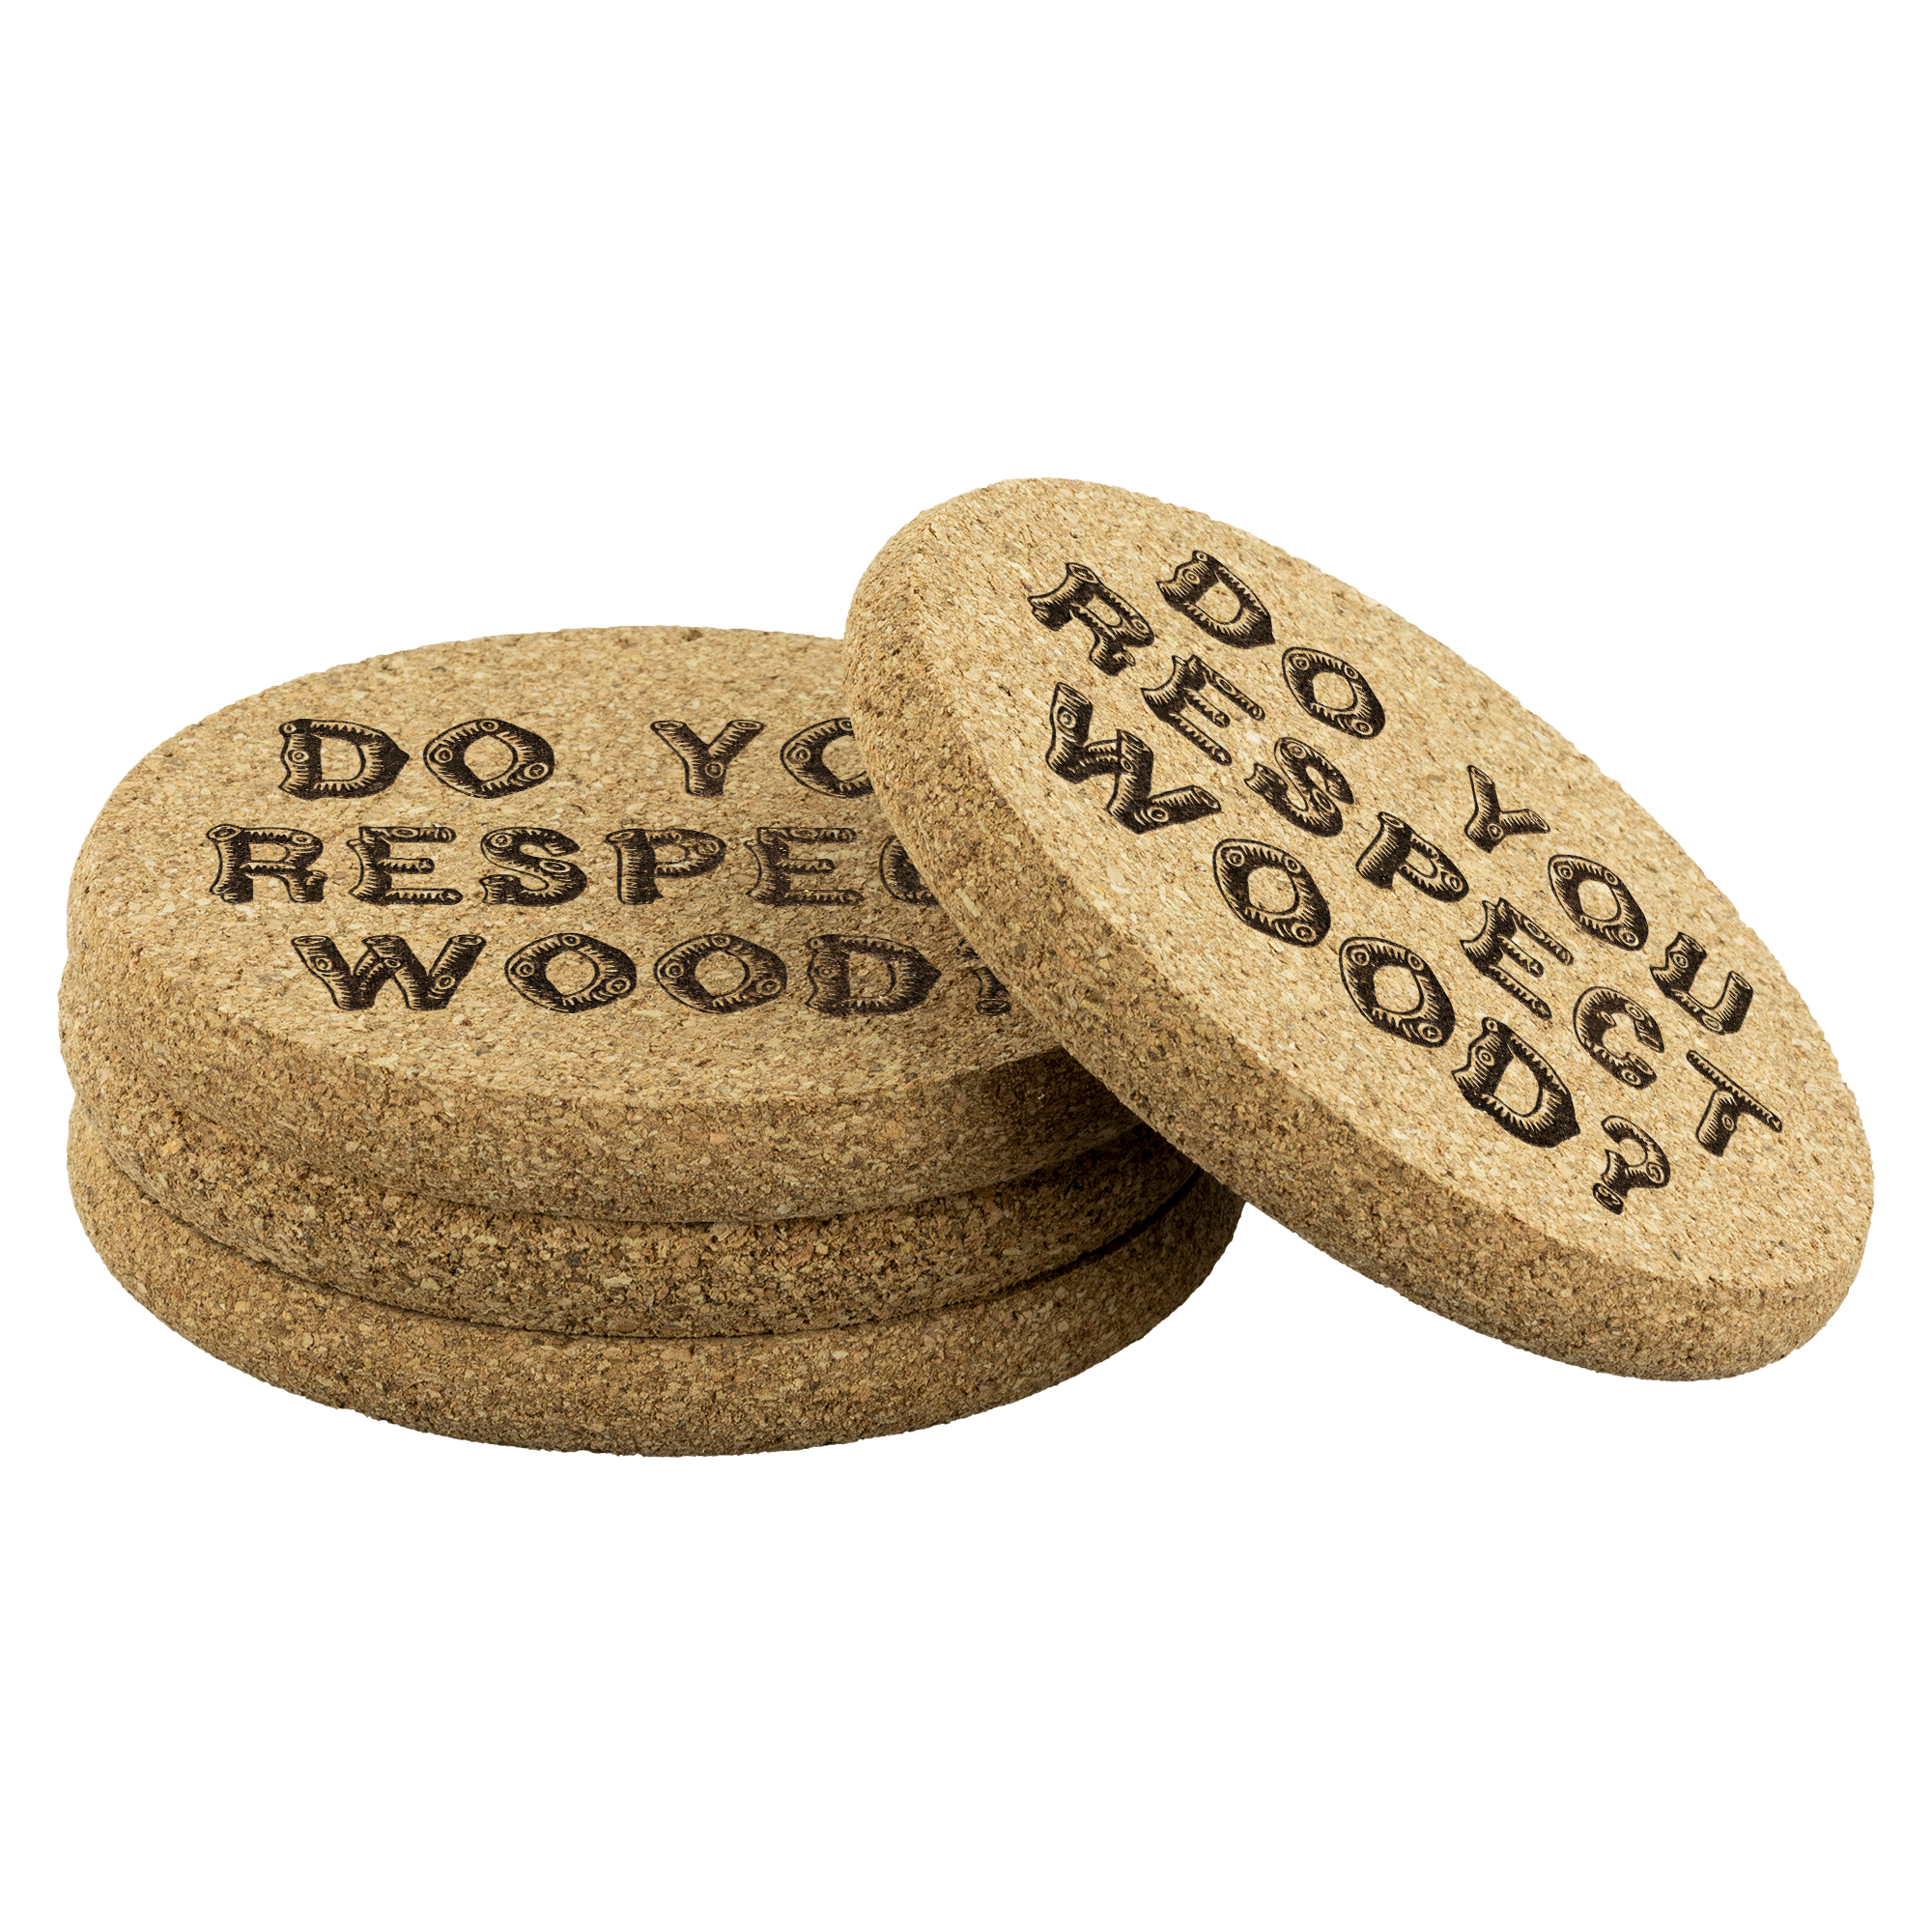 Do You Respect Wood? Larry David Coasters (4)